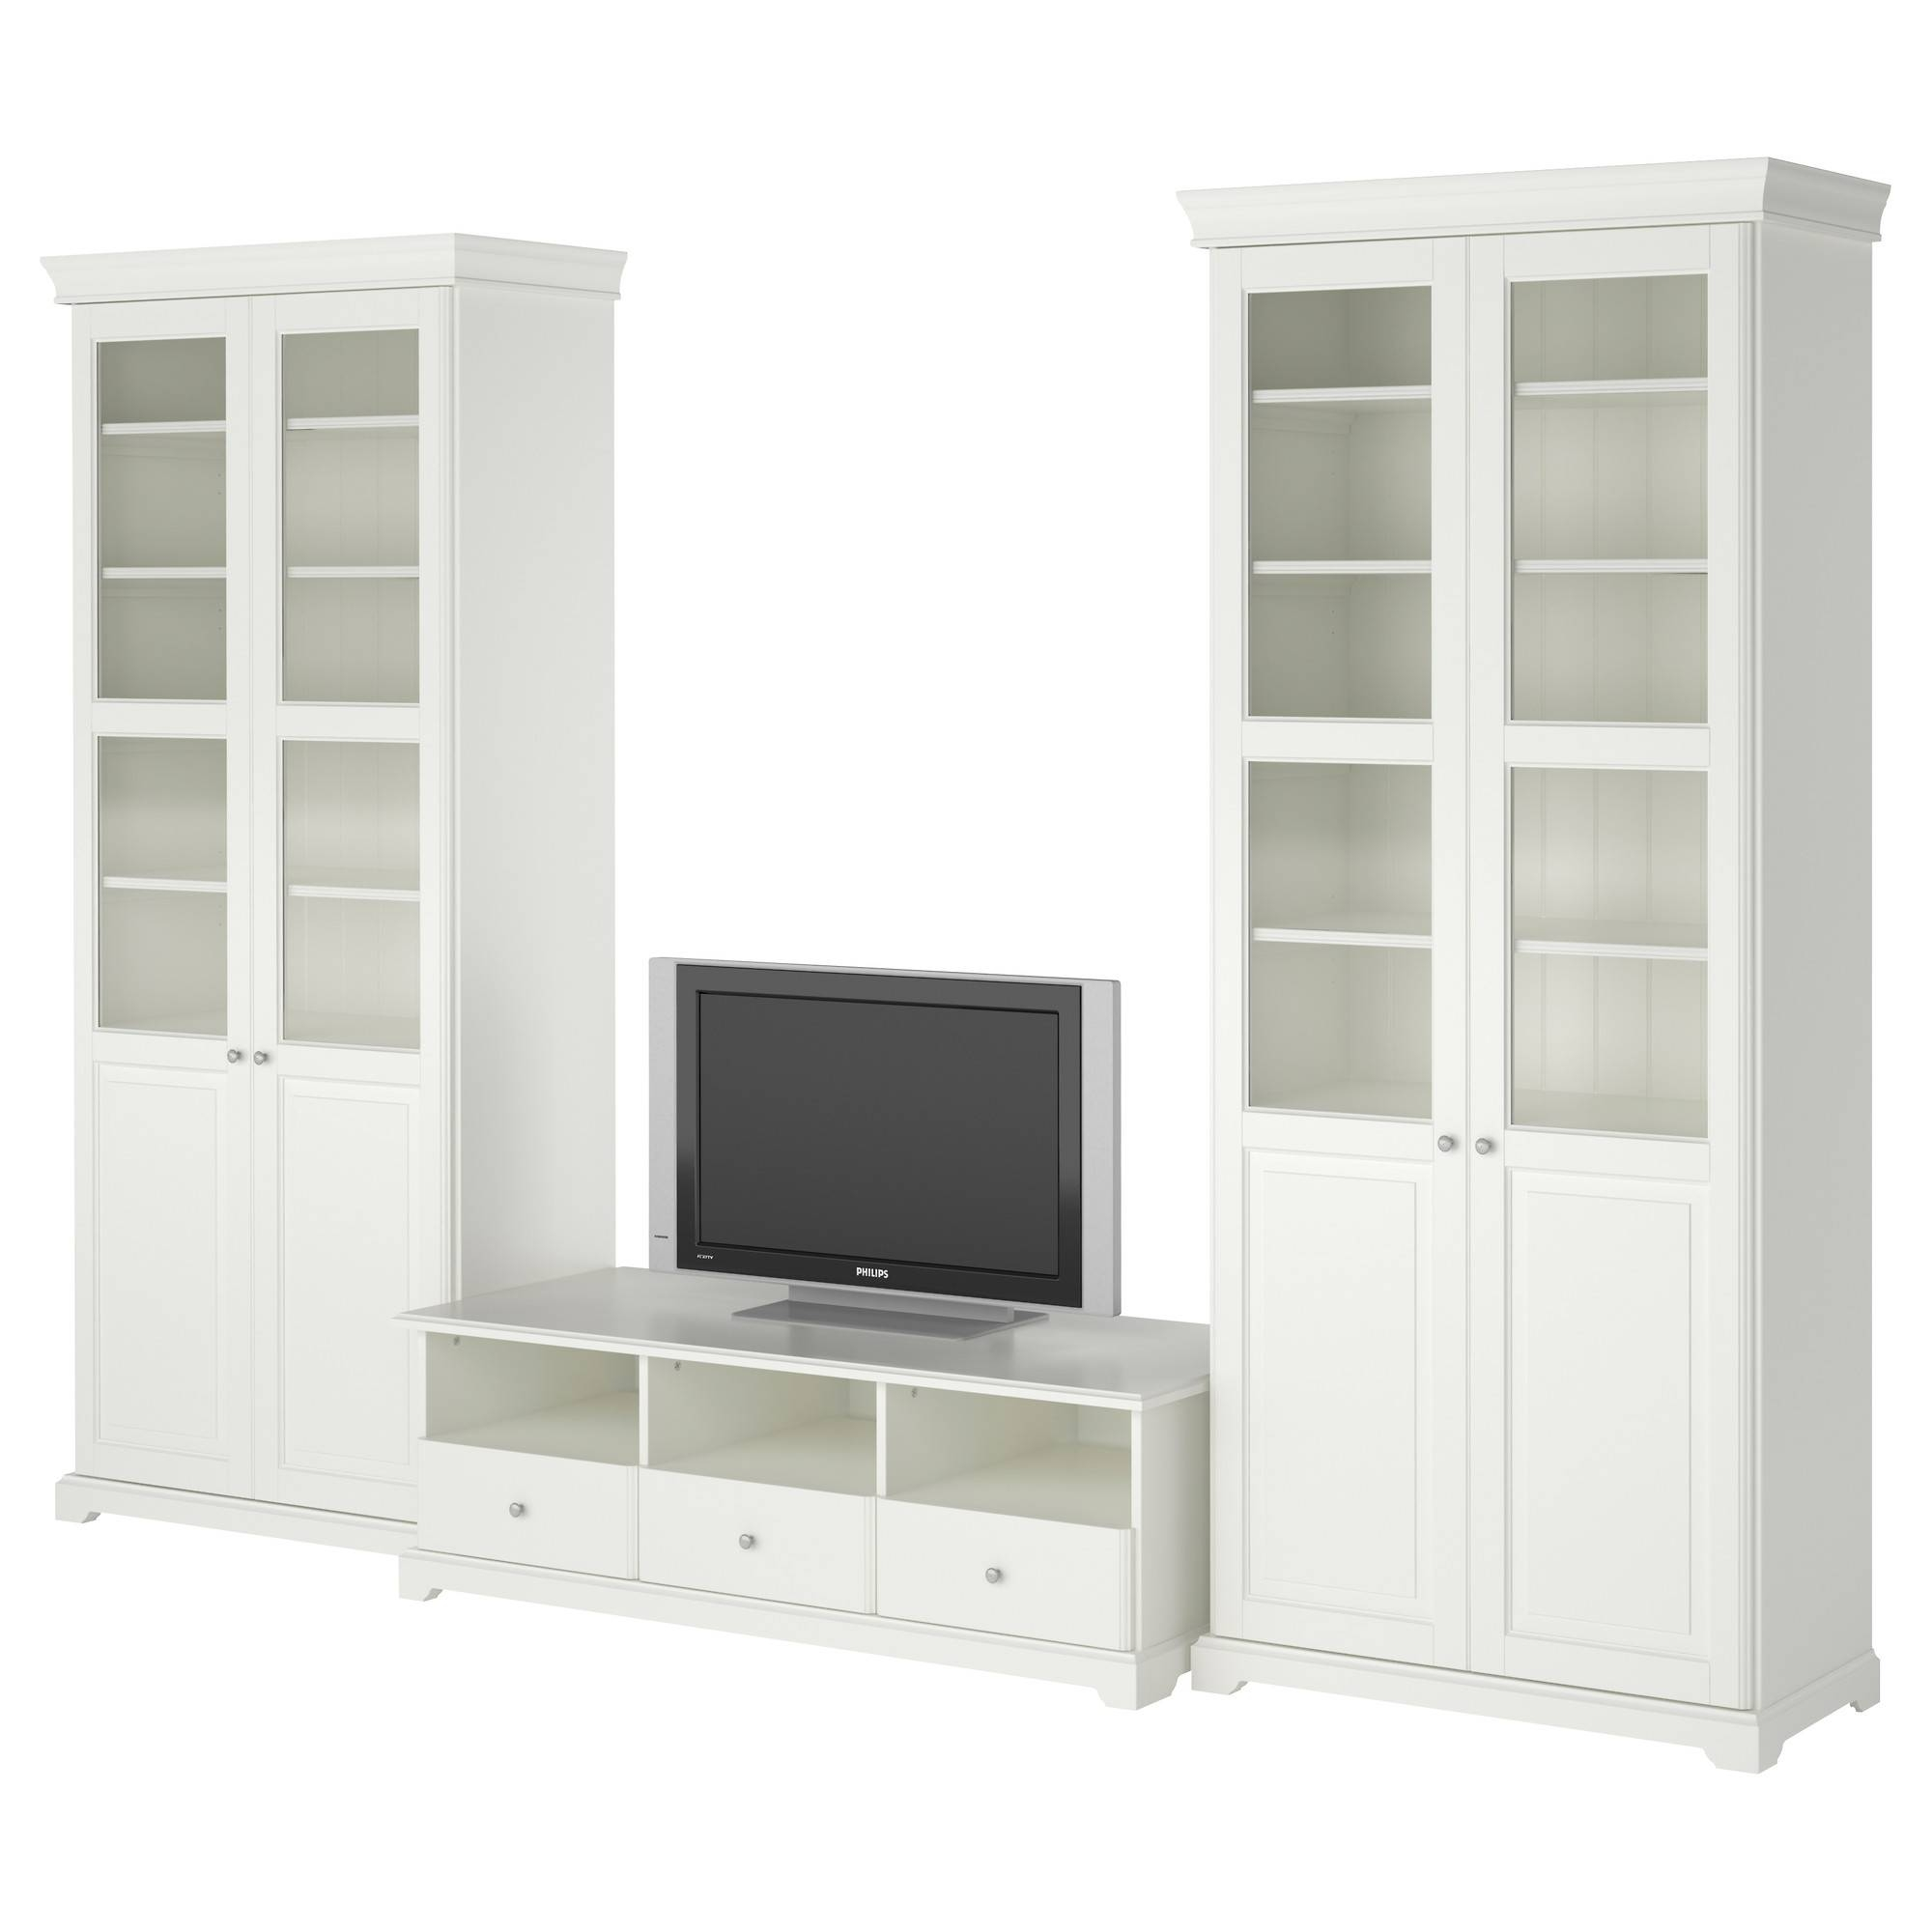 Liatorp Tv Storage Combination White 331x214 Cm – Ikea With Tv Cabinets (View 12 of 15)